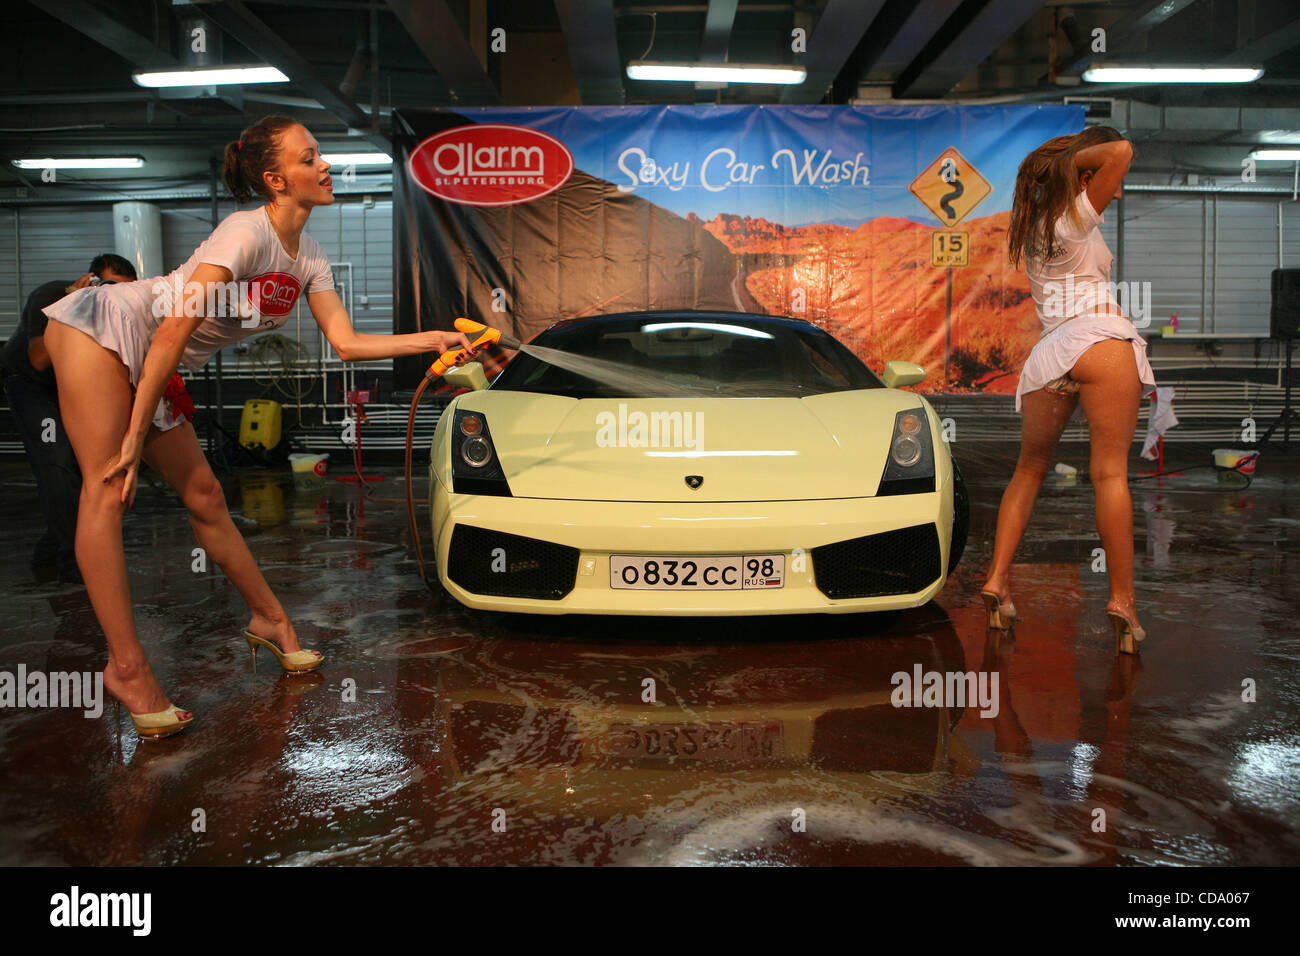 alarm sexy car wash action at one of st petersburg s car wash stock photo royalty free image. Black Bedroom Furniture Sets. Home Design Ideas